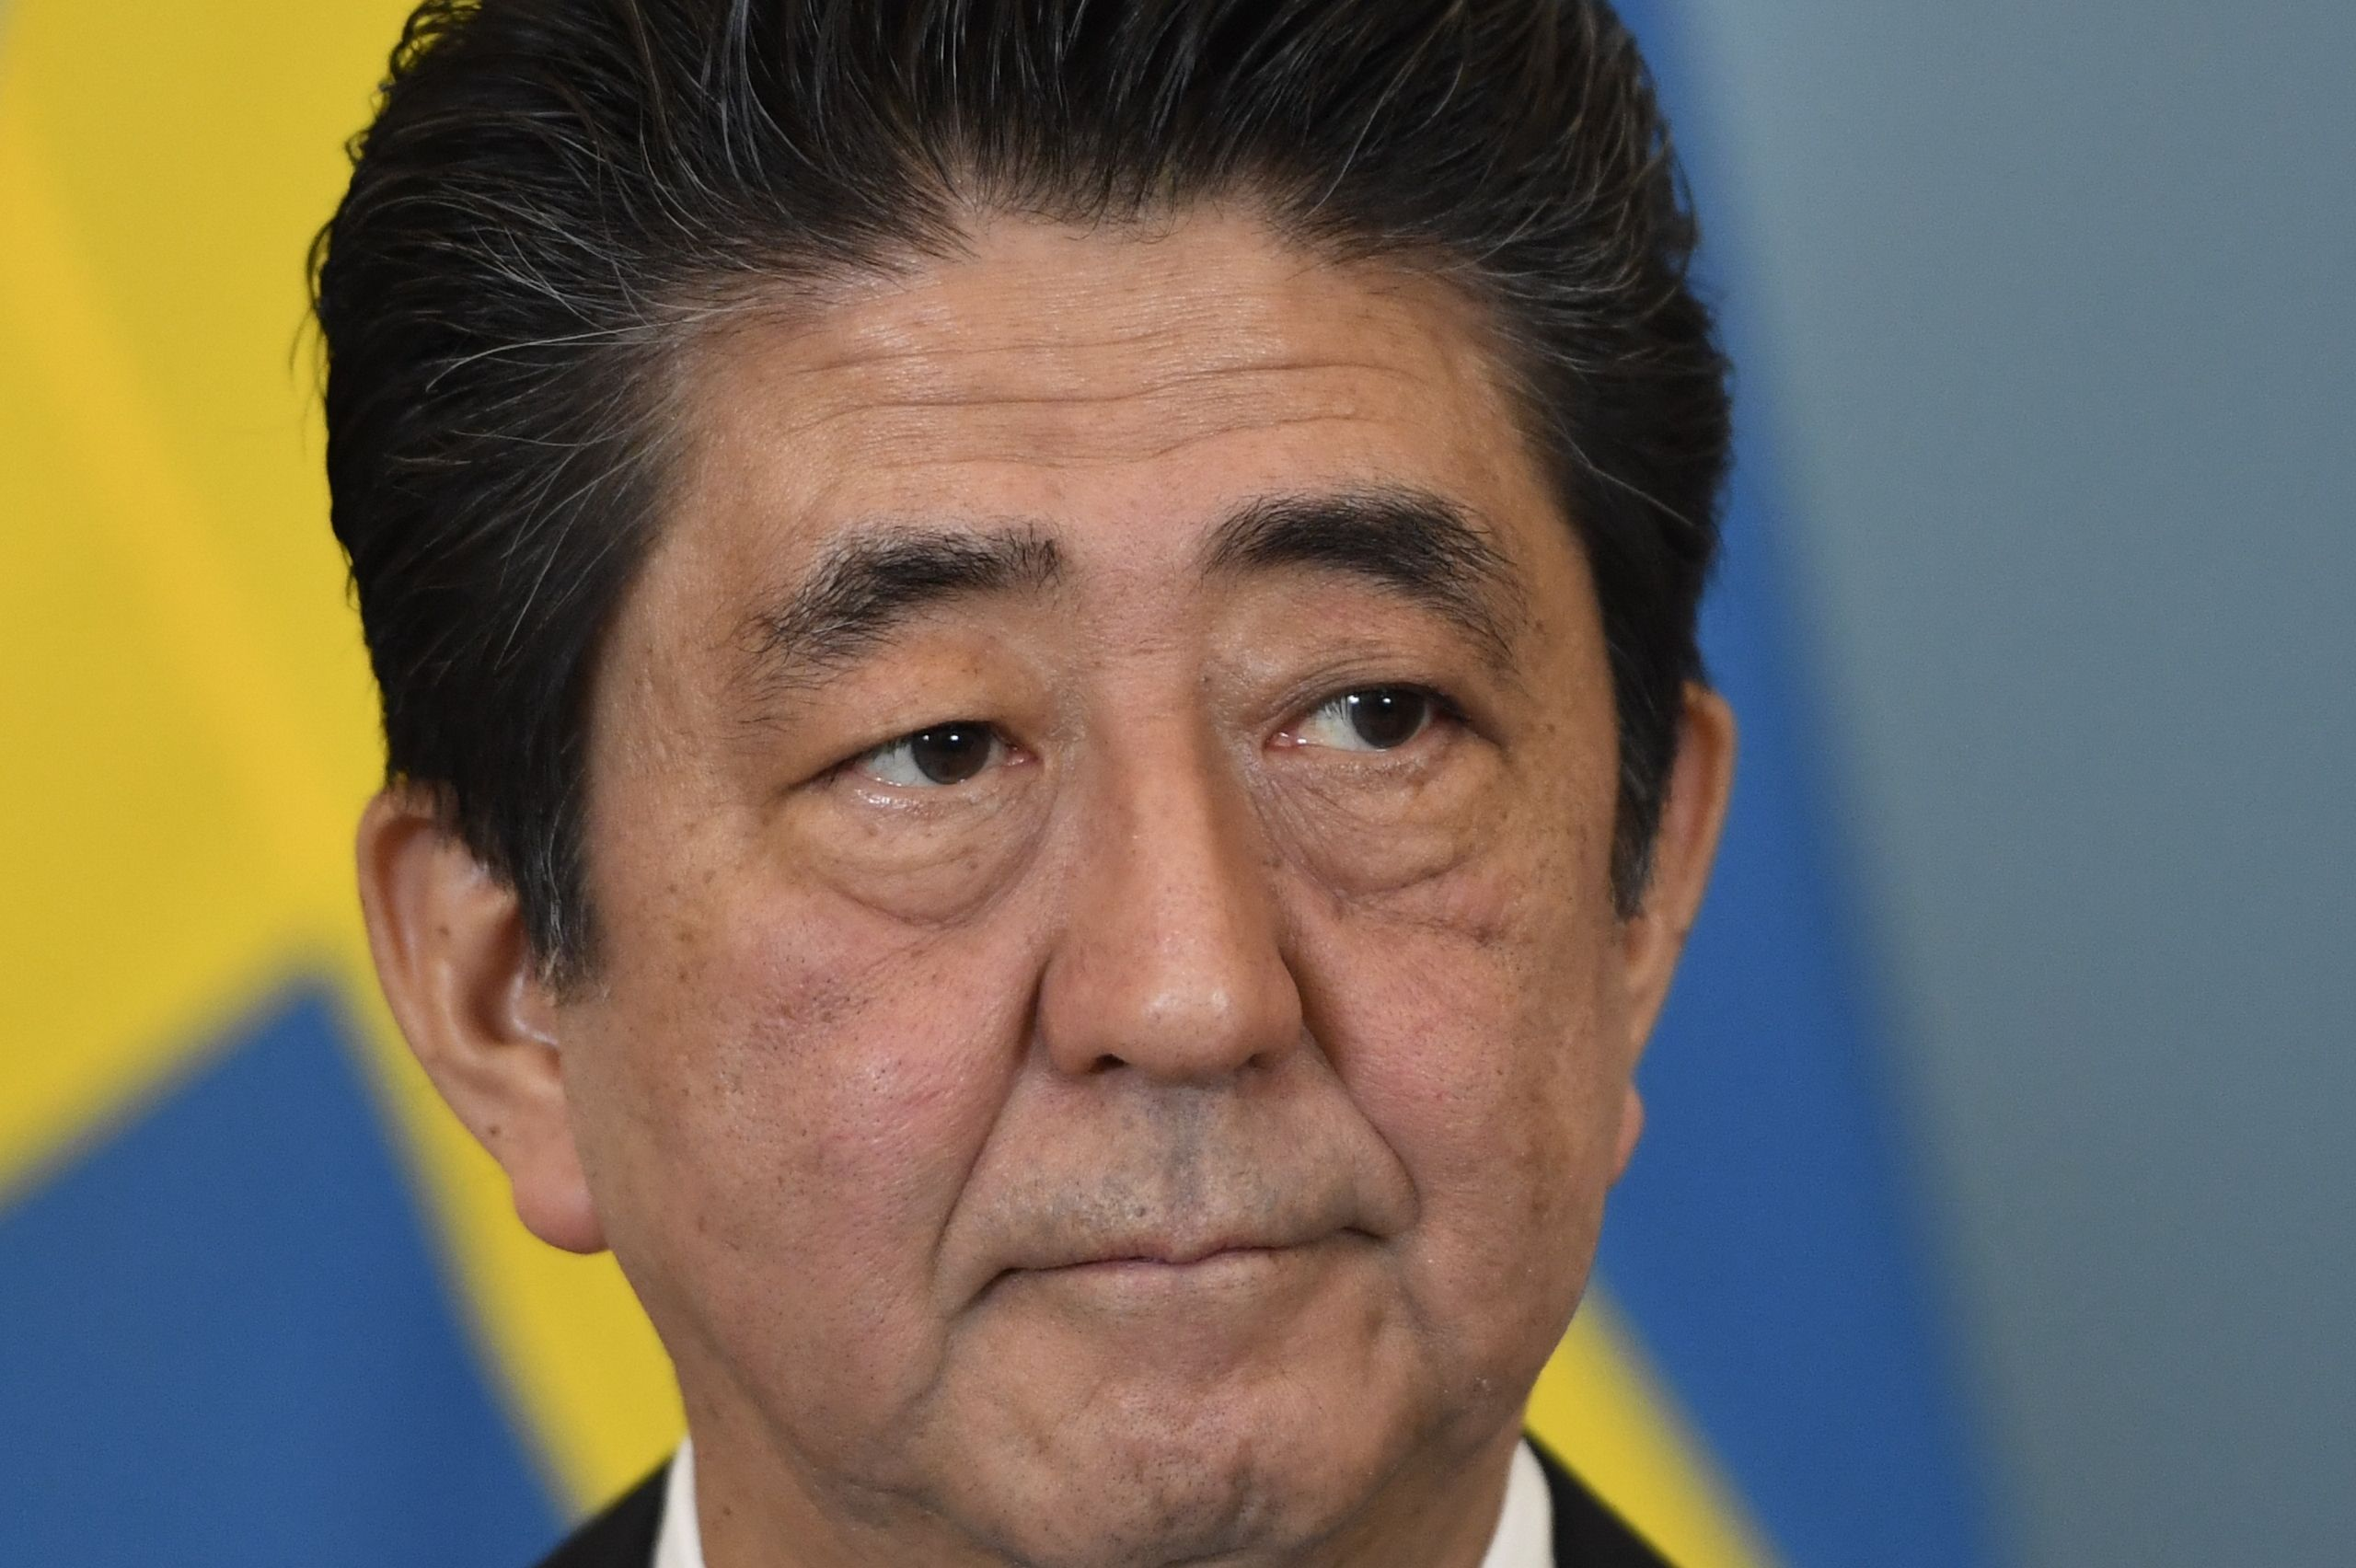 Japan's Prime Minister Shinzo Abe at a joint press conference with the Swedish Prime Minister in Stockholm, July 9, 2017.